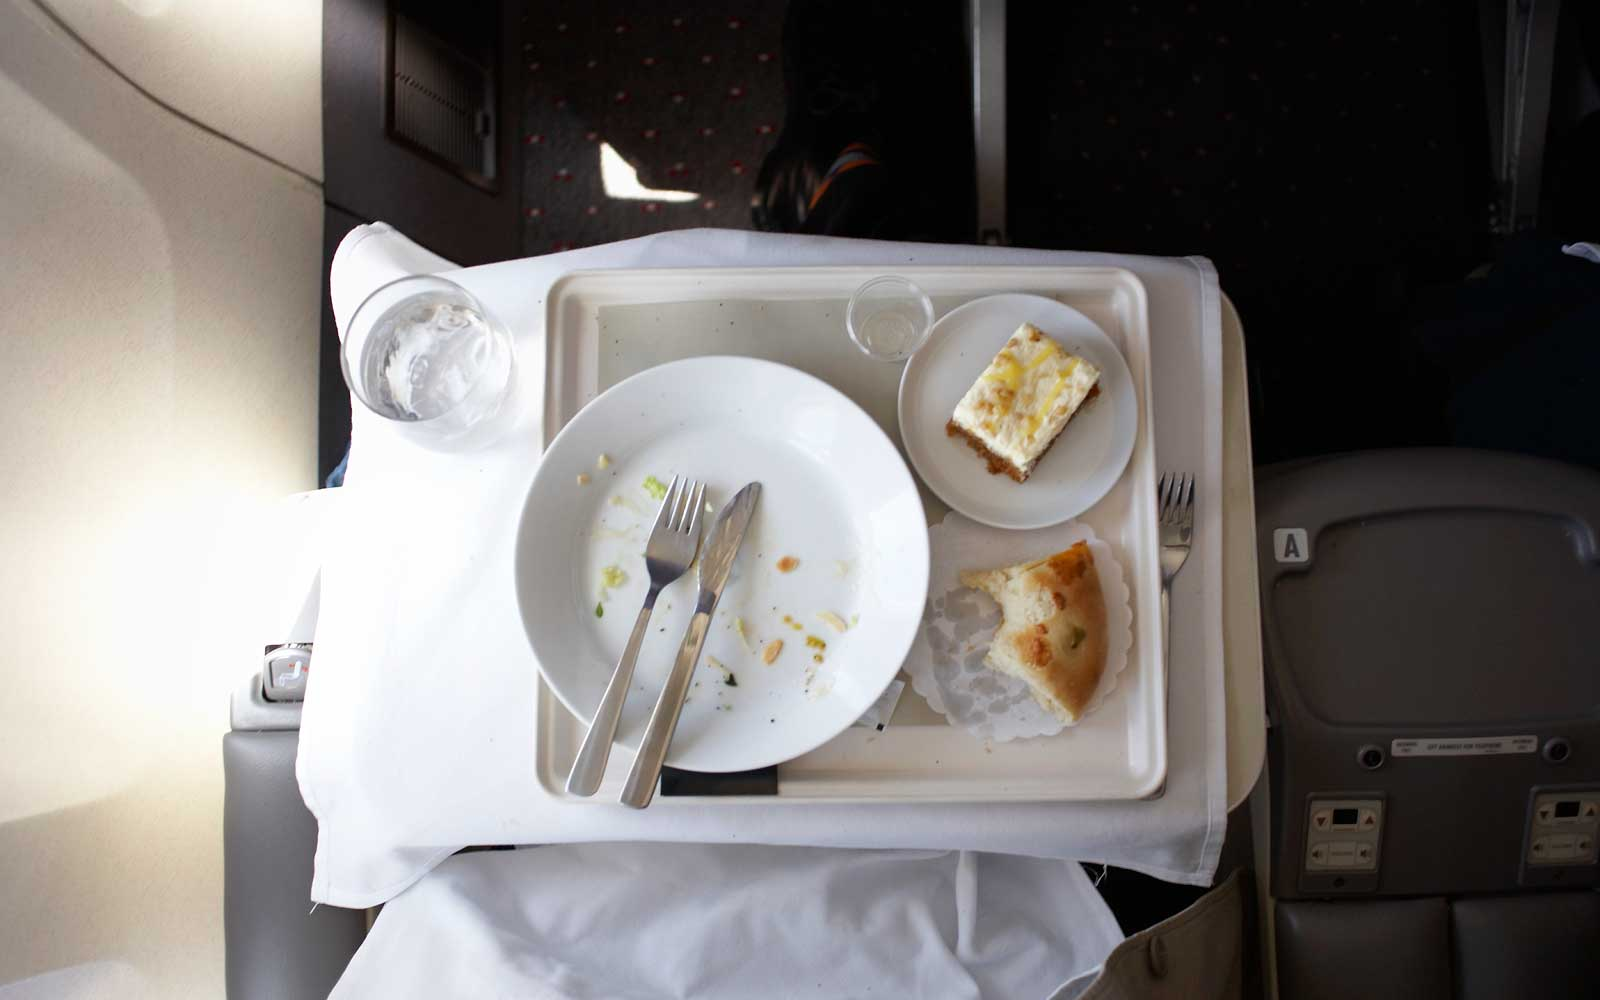 Airplane meal, tray